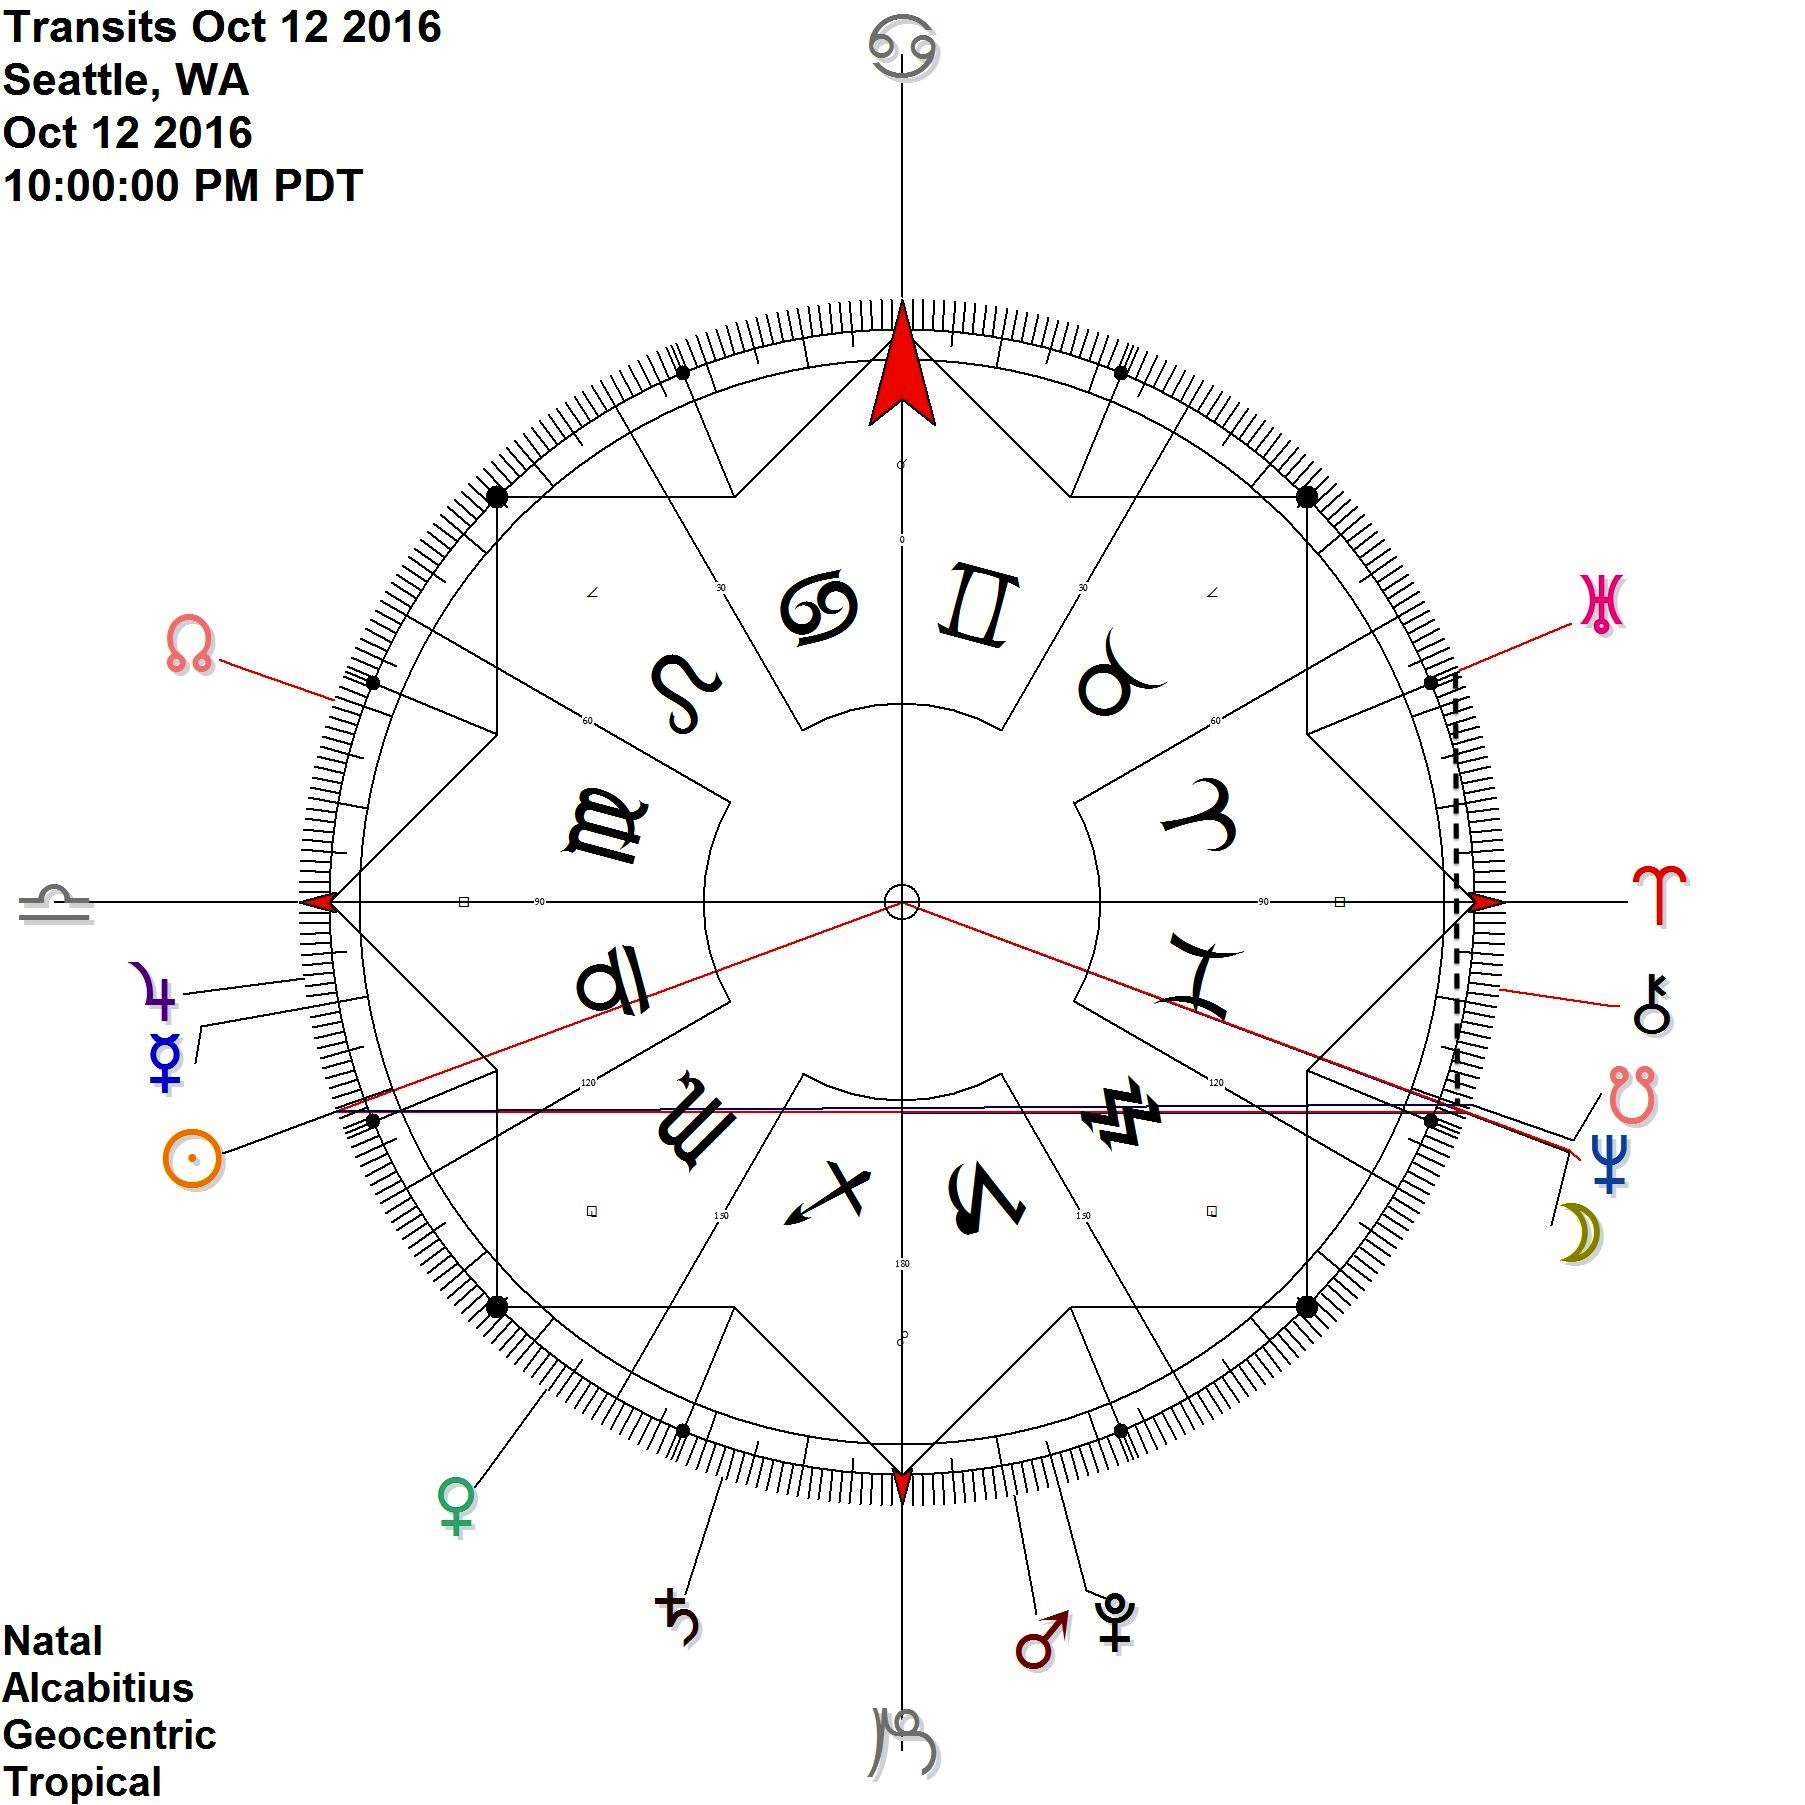 SUN AT MAX. FALL IN LIBRA REFLECTS NEPTUNE,  NODE,  MOON IN PISCES MEANWHILE, THE  URANUS NEPTUNE  CONTRA-ANTISCIA REMAINS IN WIDER ORB IN THE BACKGROUND